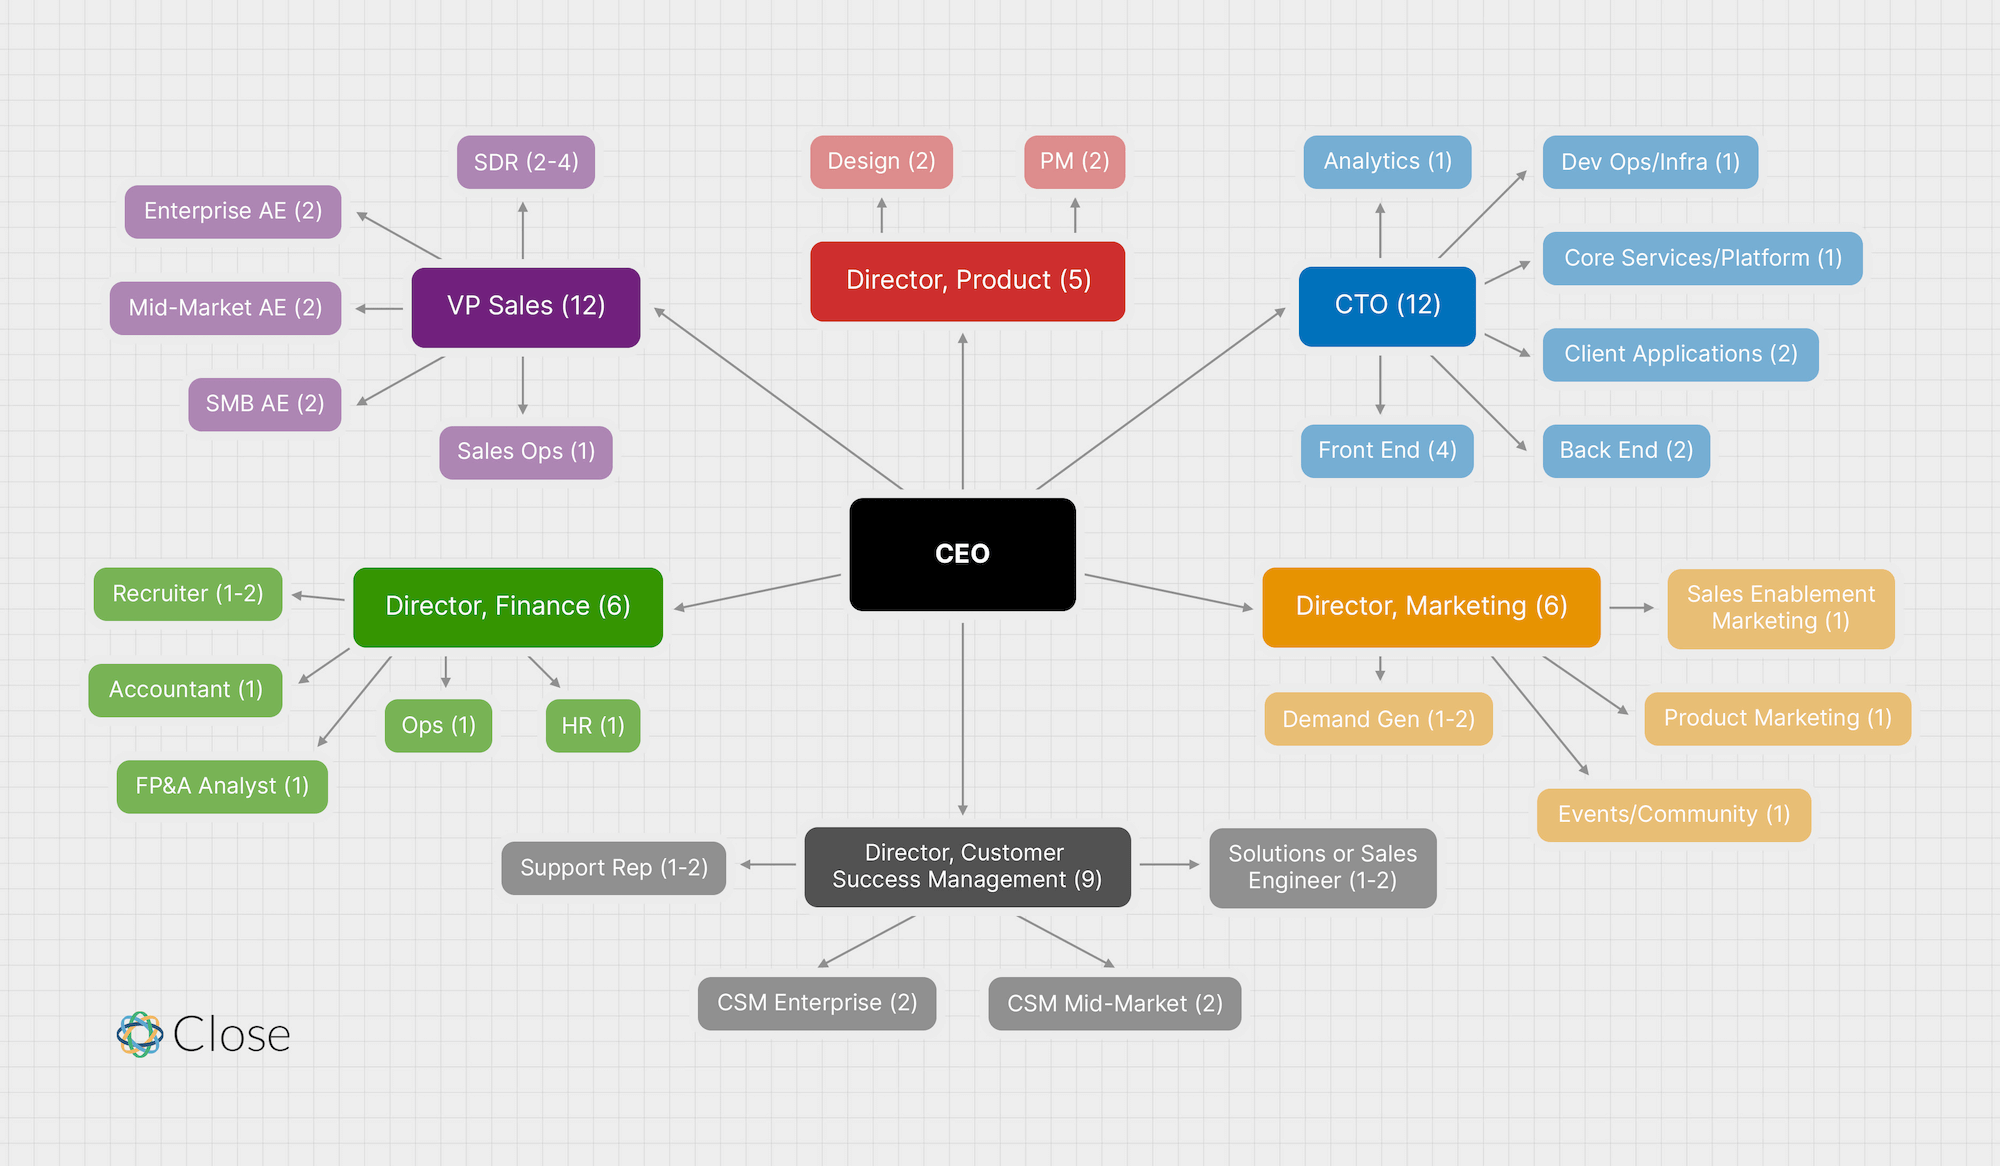 SaaS org chart for a 50 person team based